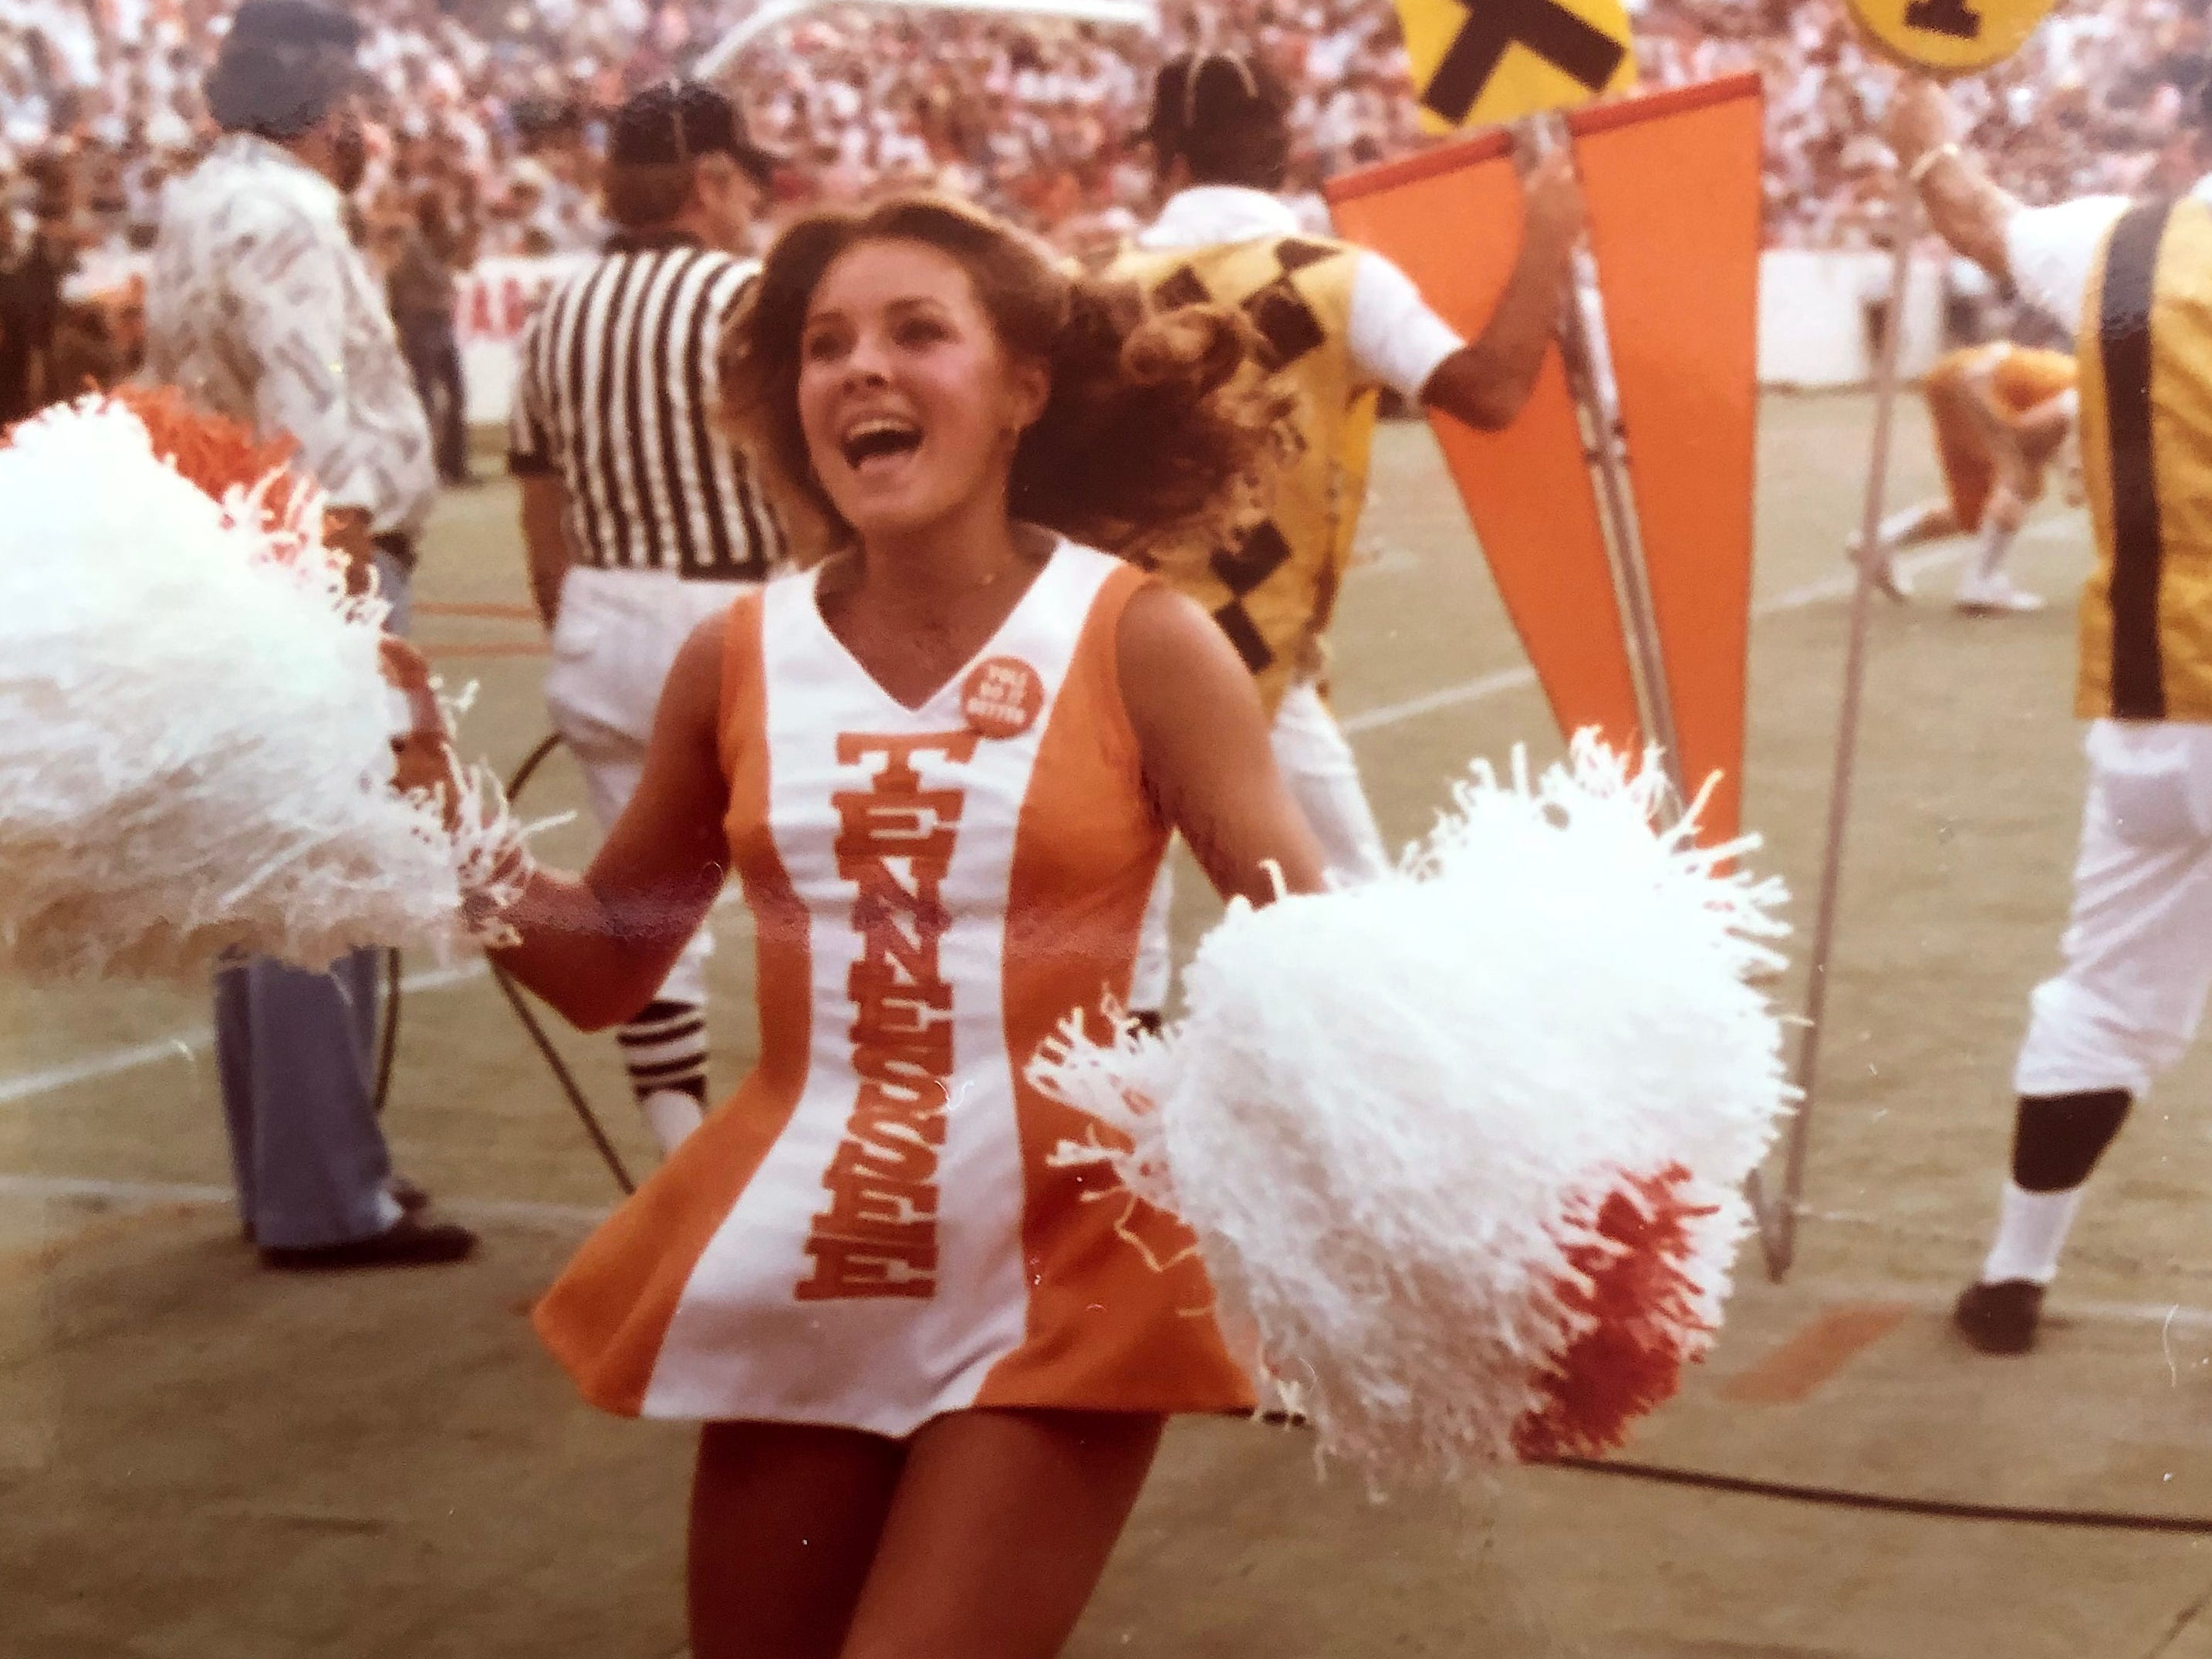 Angie Troutman cheers on the sidelines for the Vols football team. She was a member of the UT cheer team 1978-1980.